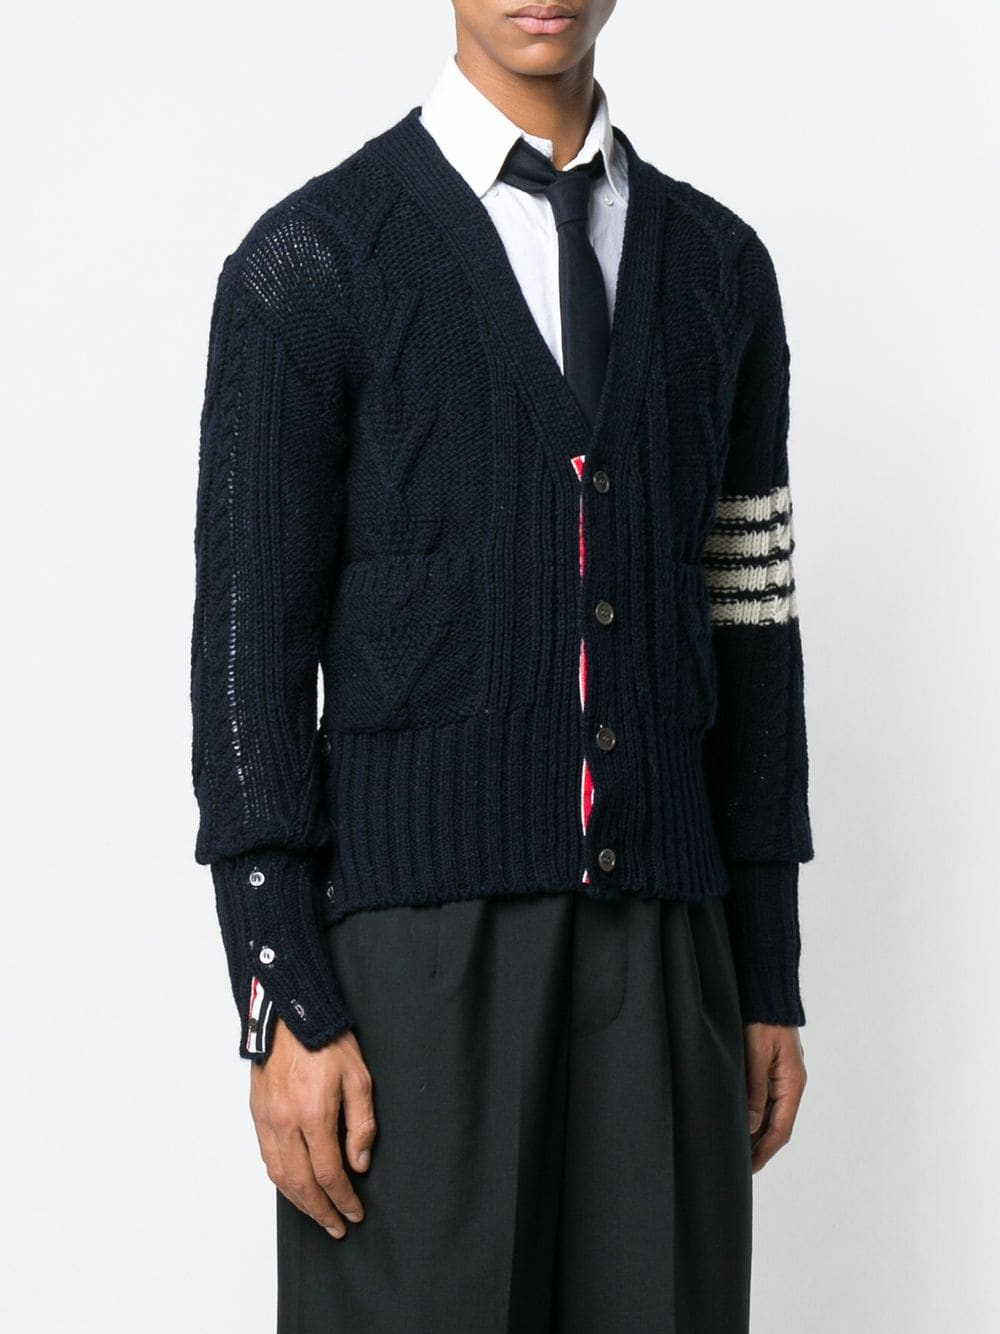 THOM BROWNE MEN ARAN CABLE V NECK CARDIGAN IN DONEGAL WITH 4 BAR STRIPE